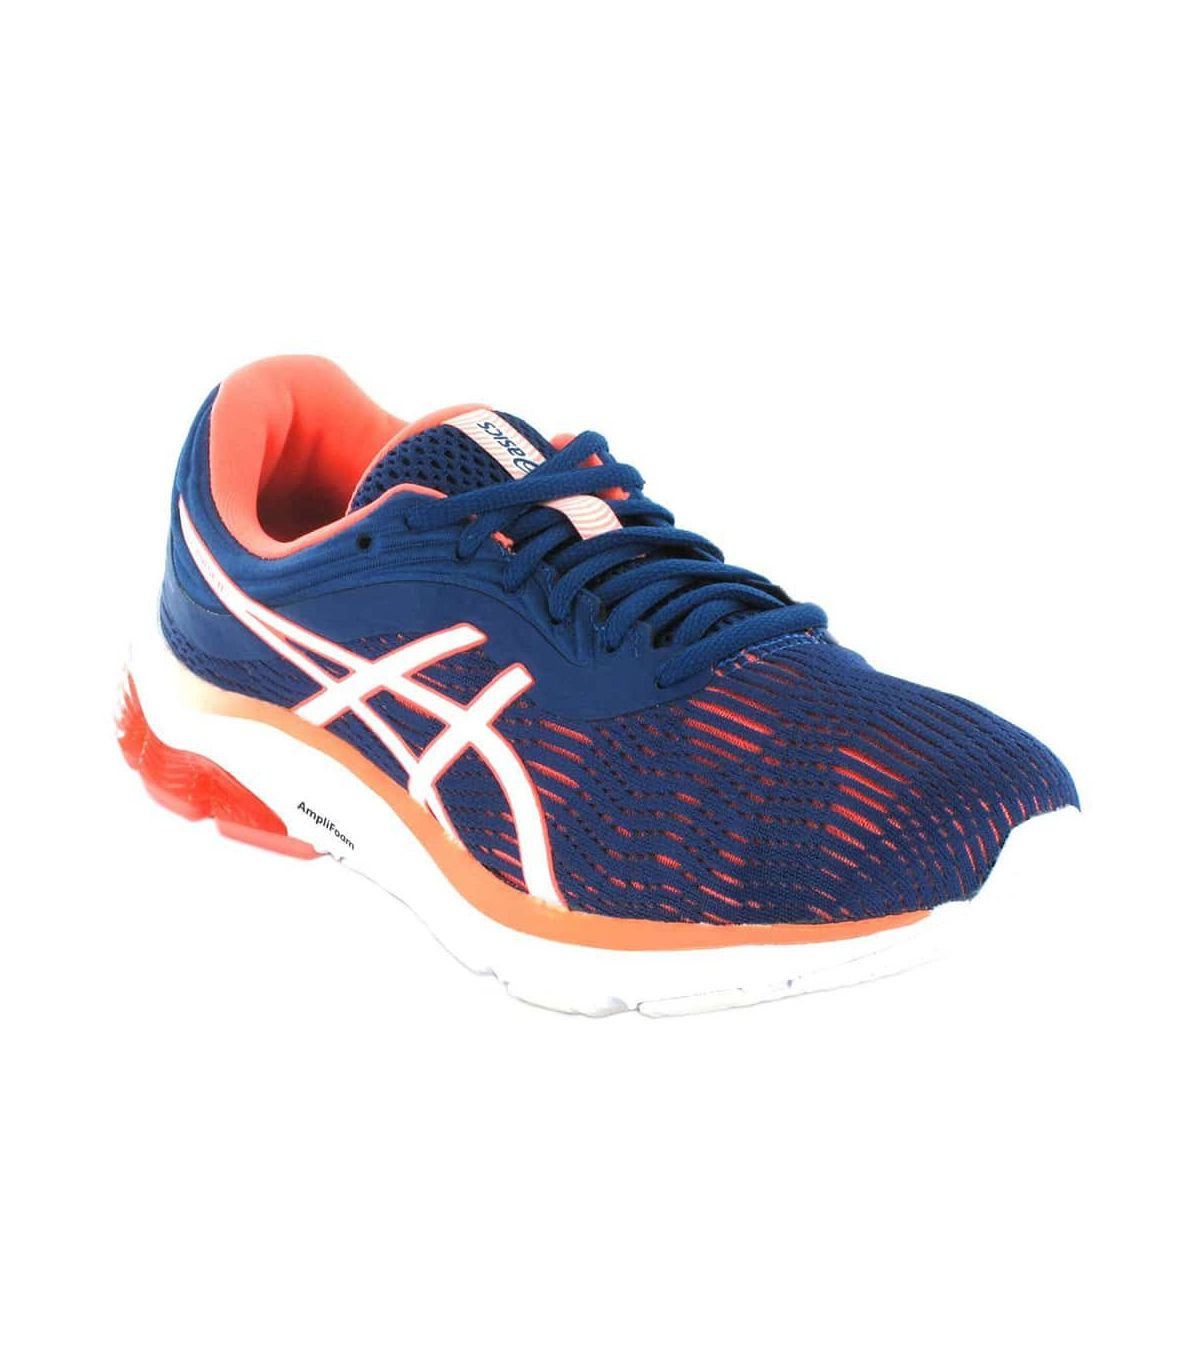 Asics Gel Pulse 11 W Asics Running Shoes Woman Running Shoes Running Sizes: 38, 39, 39,5, 40, 40,5, 41,5; Color: